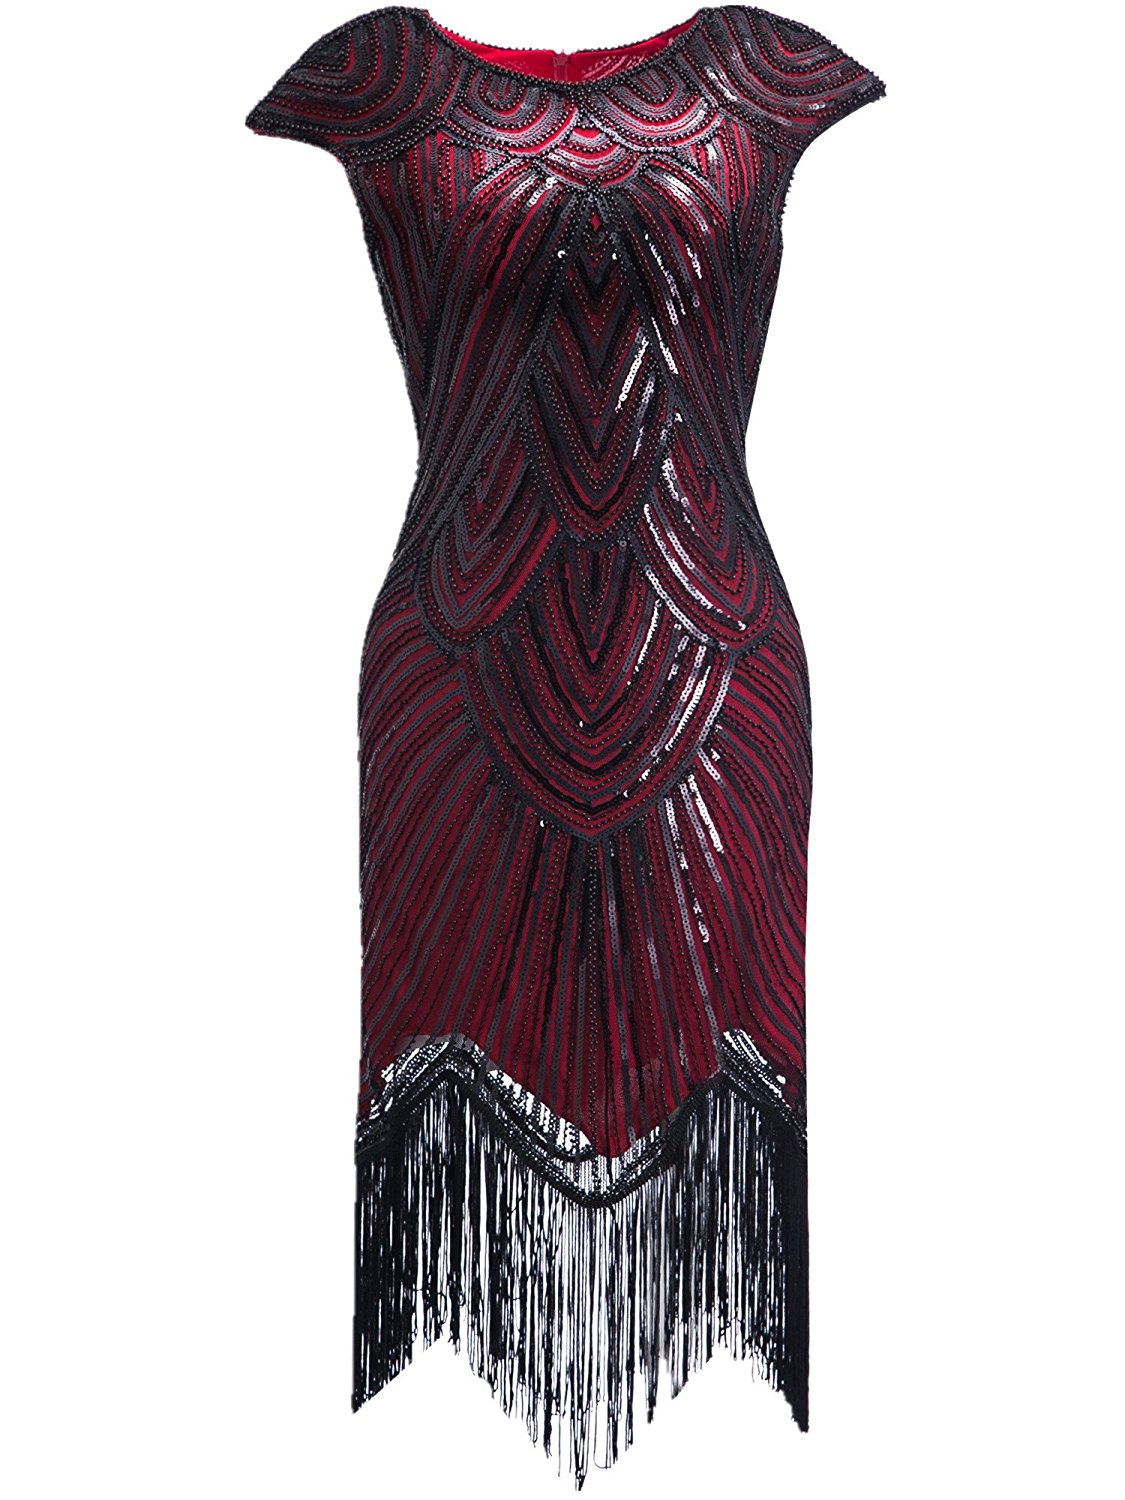 bdb87c19e744b Get Quotations · Clothin Women's 1920s Style Beaded Deco Flapper Dress  Vintage Inspired Sequin Embellished Fringe Gatsby Dress